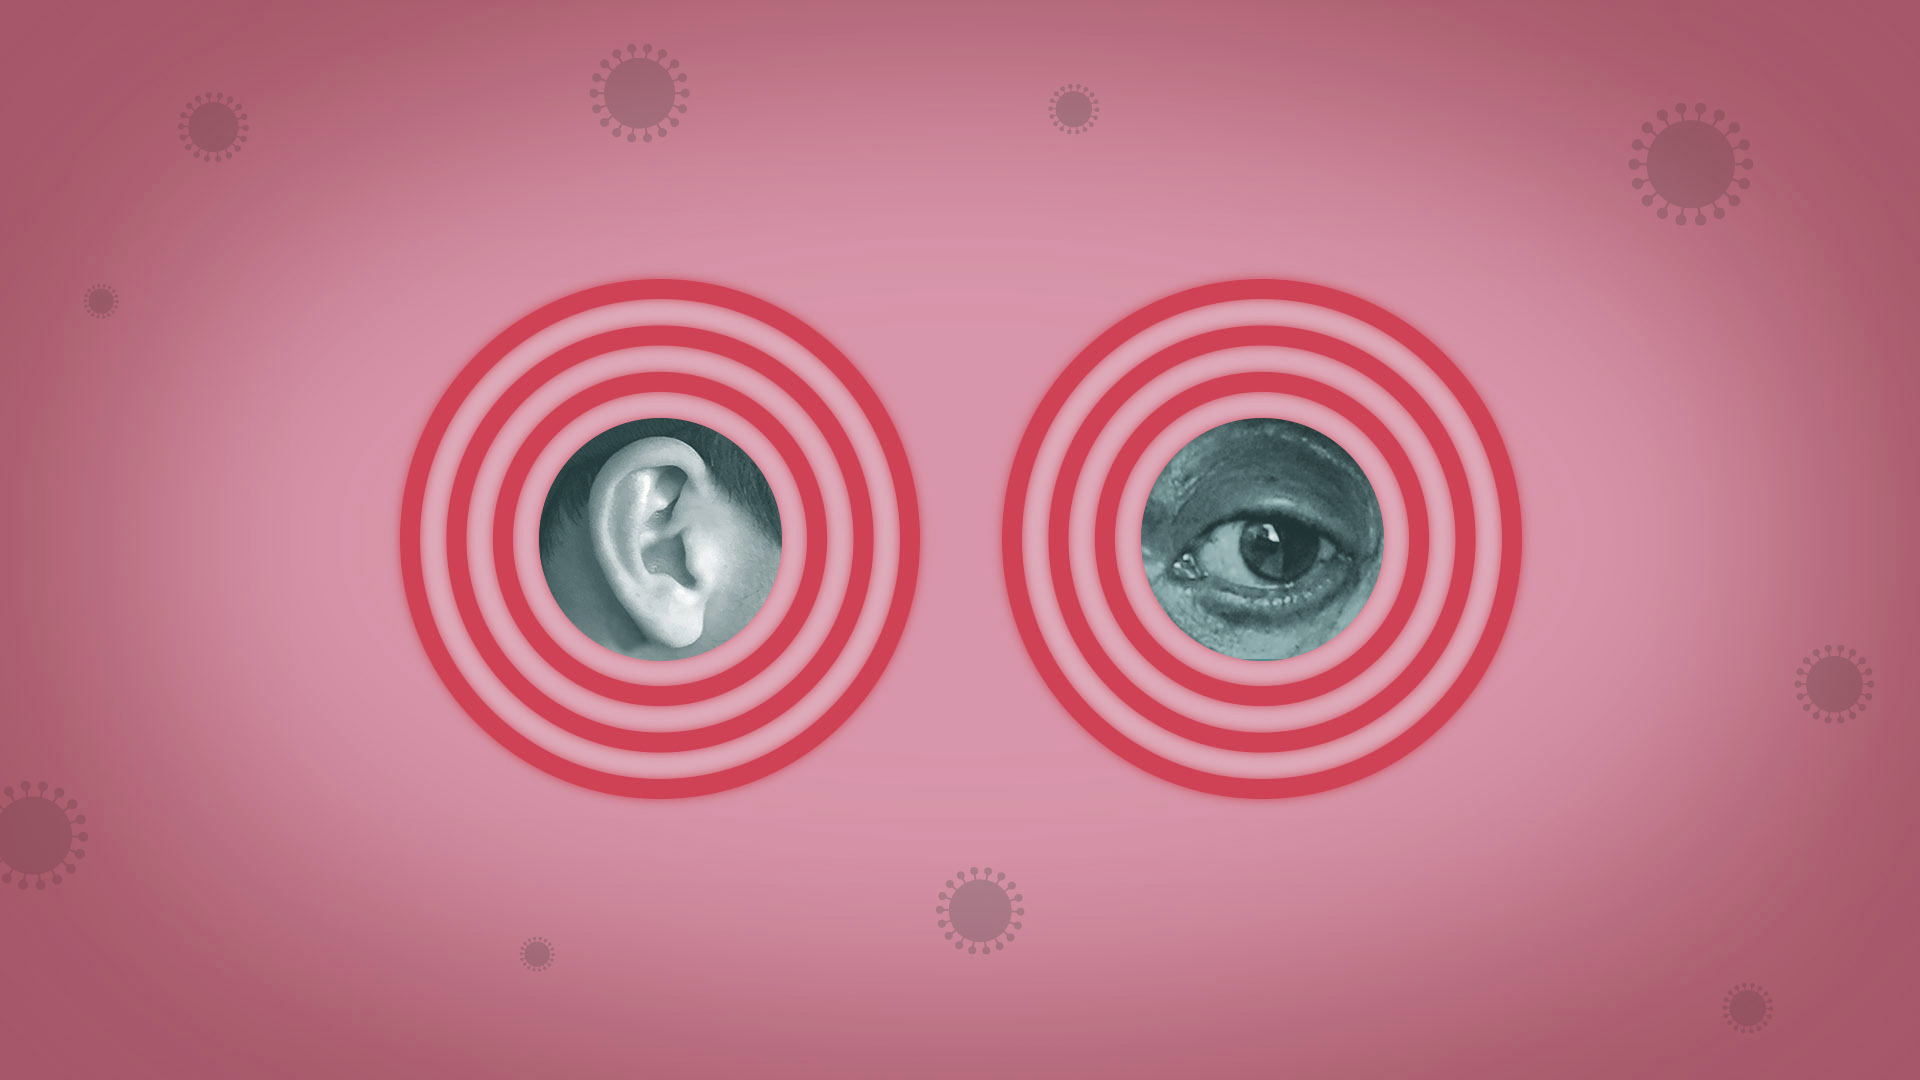 VIRUS OUTBREAK VIRAL QUESTIONS EARS AND EYES